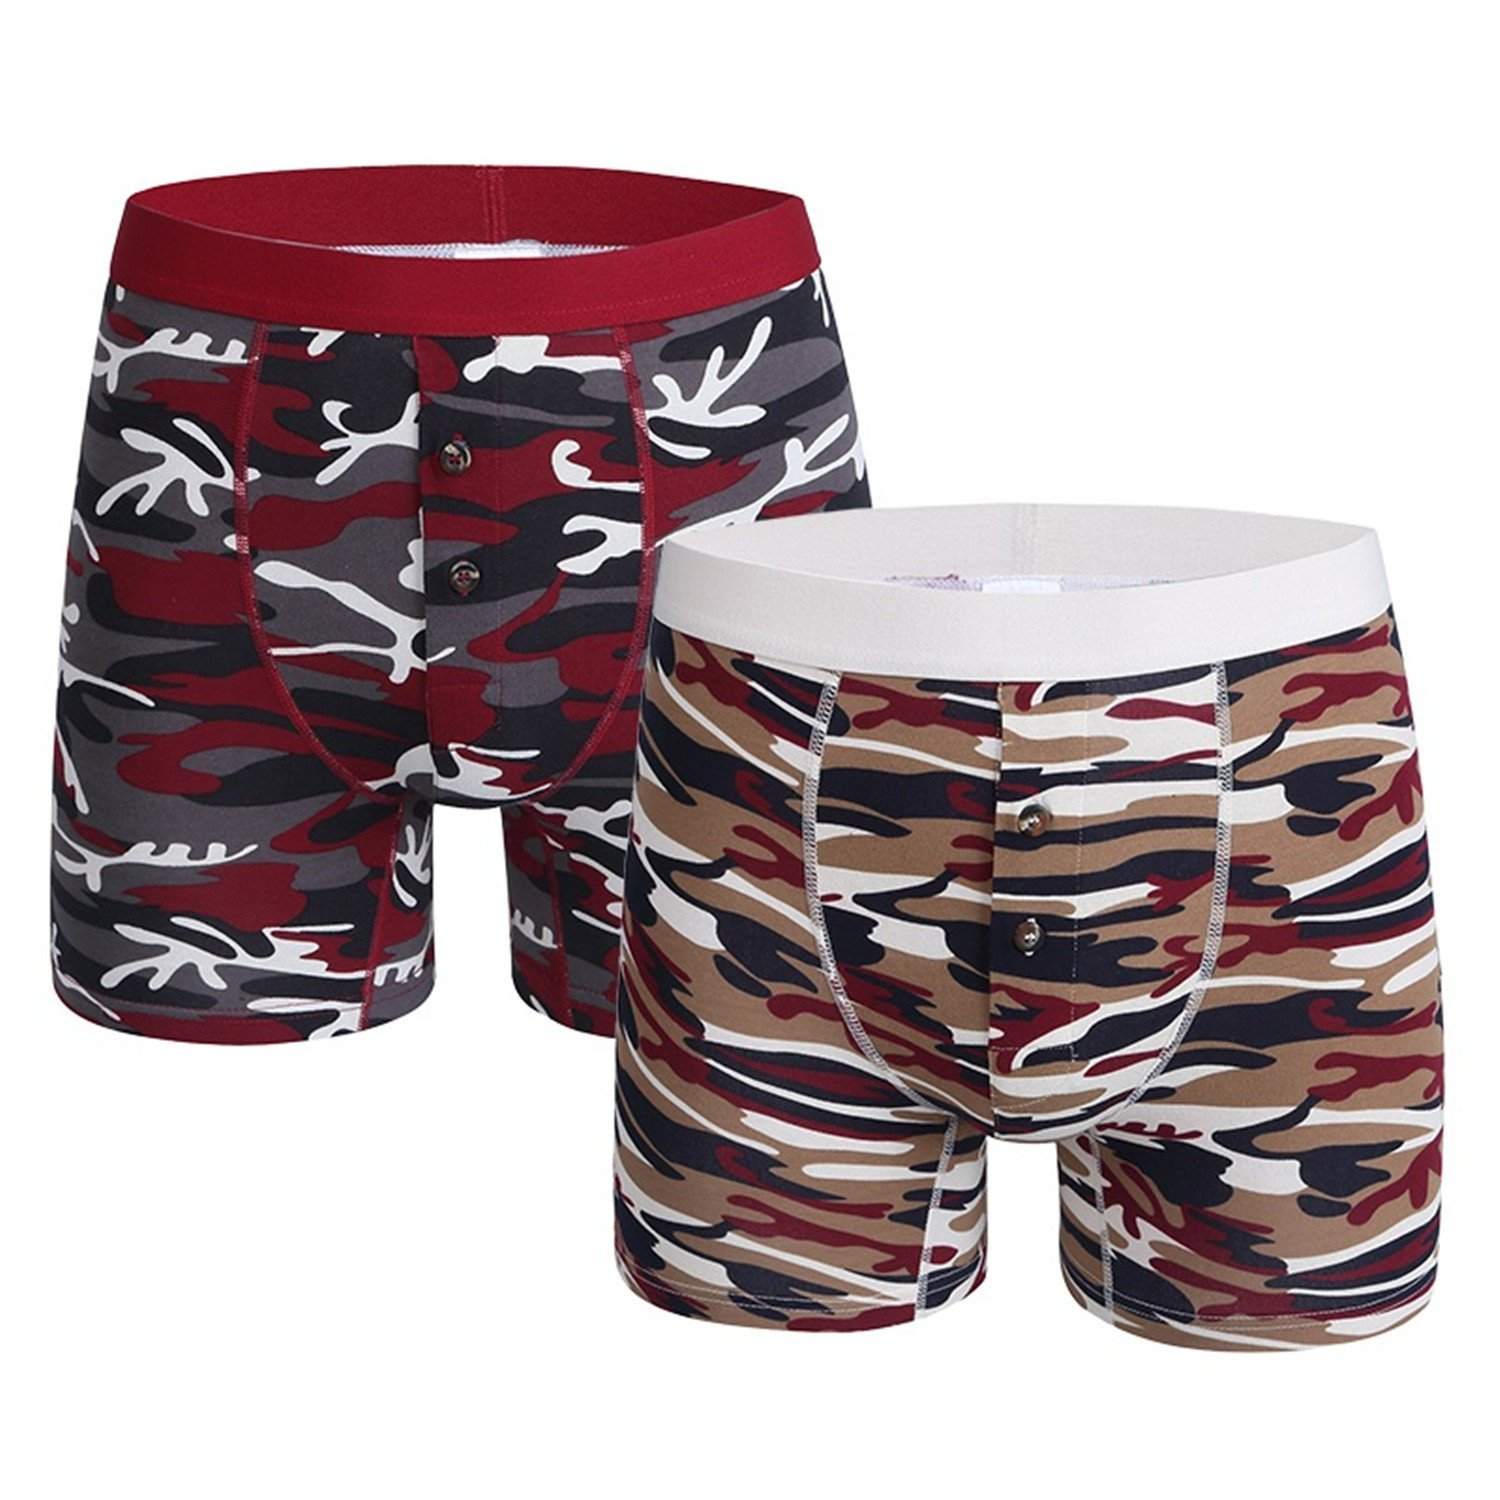 fashionablestyle search for original info for Cheap Camouflage Underwear For Mens, find Camouflage ...